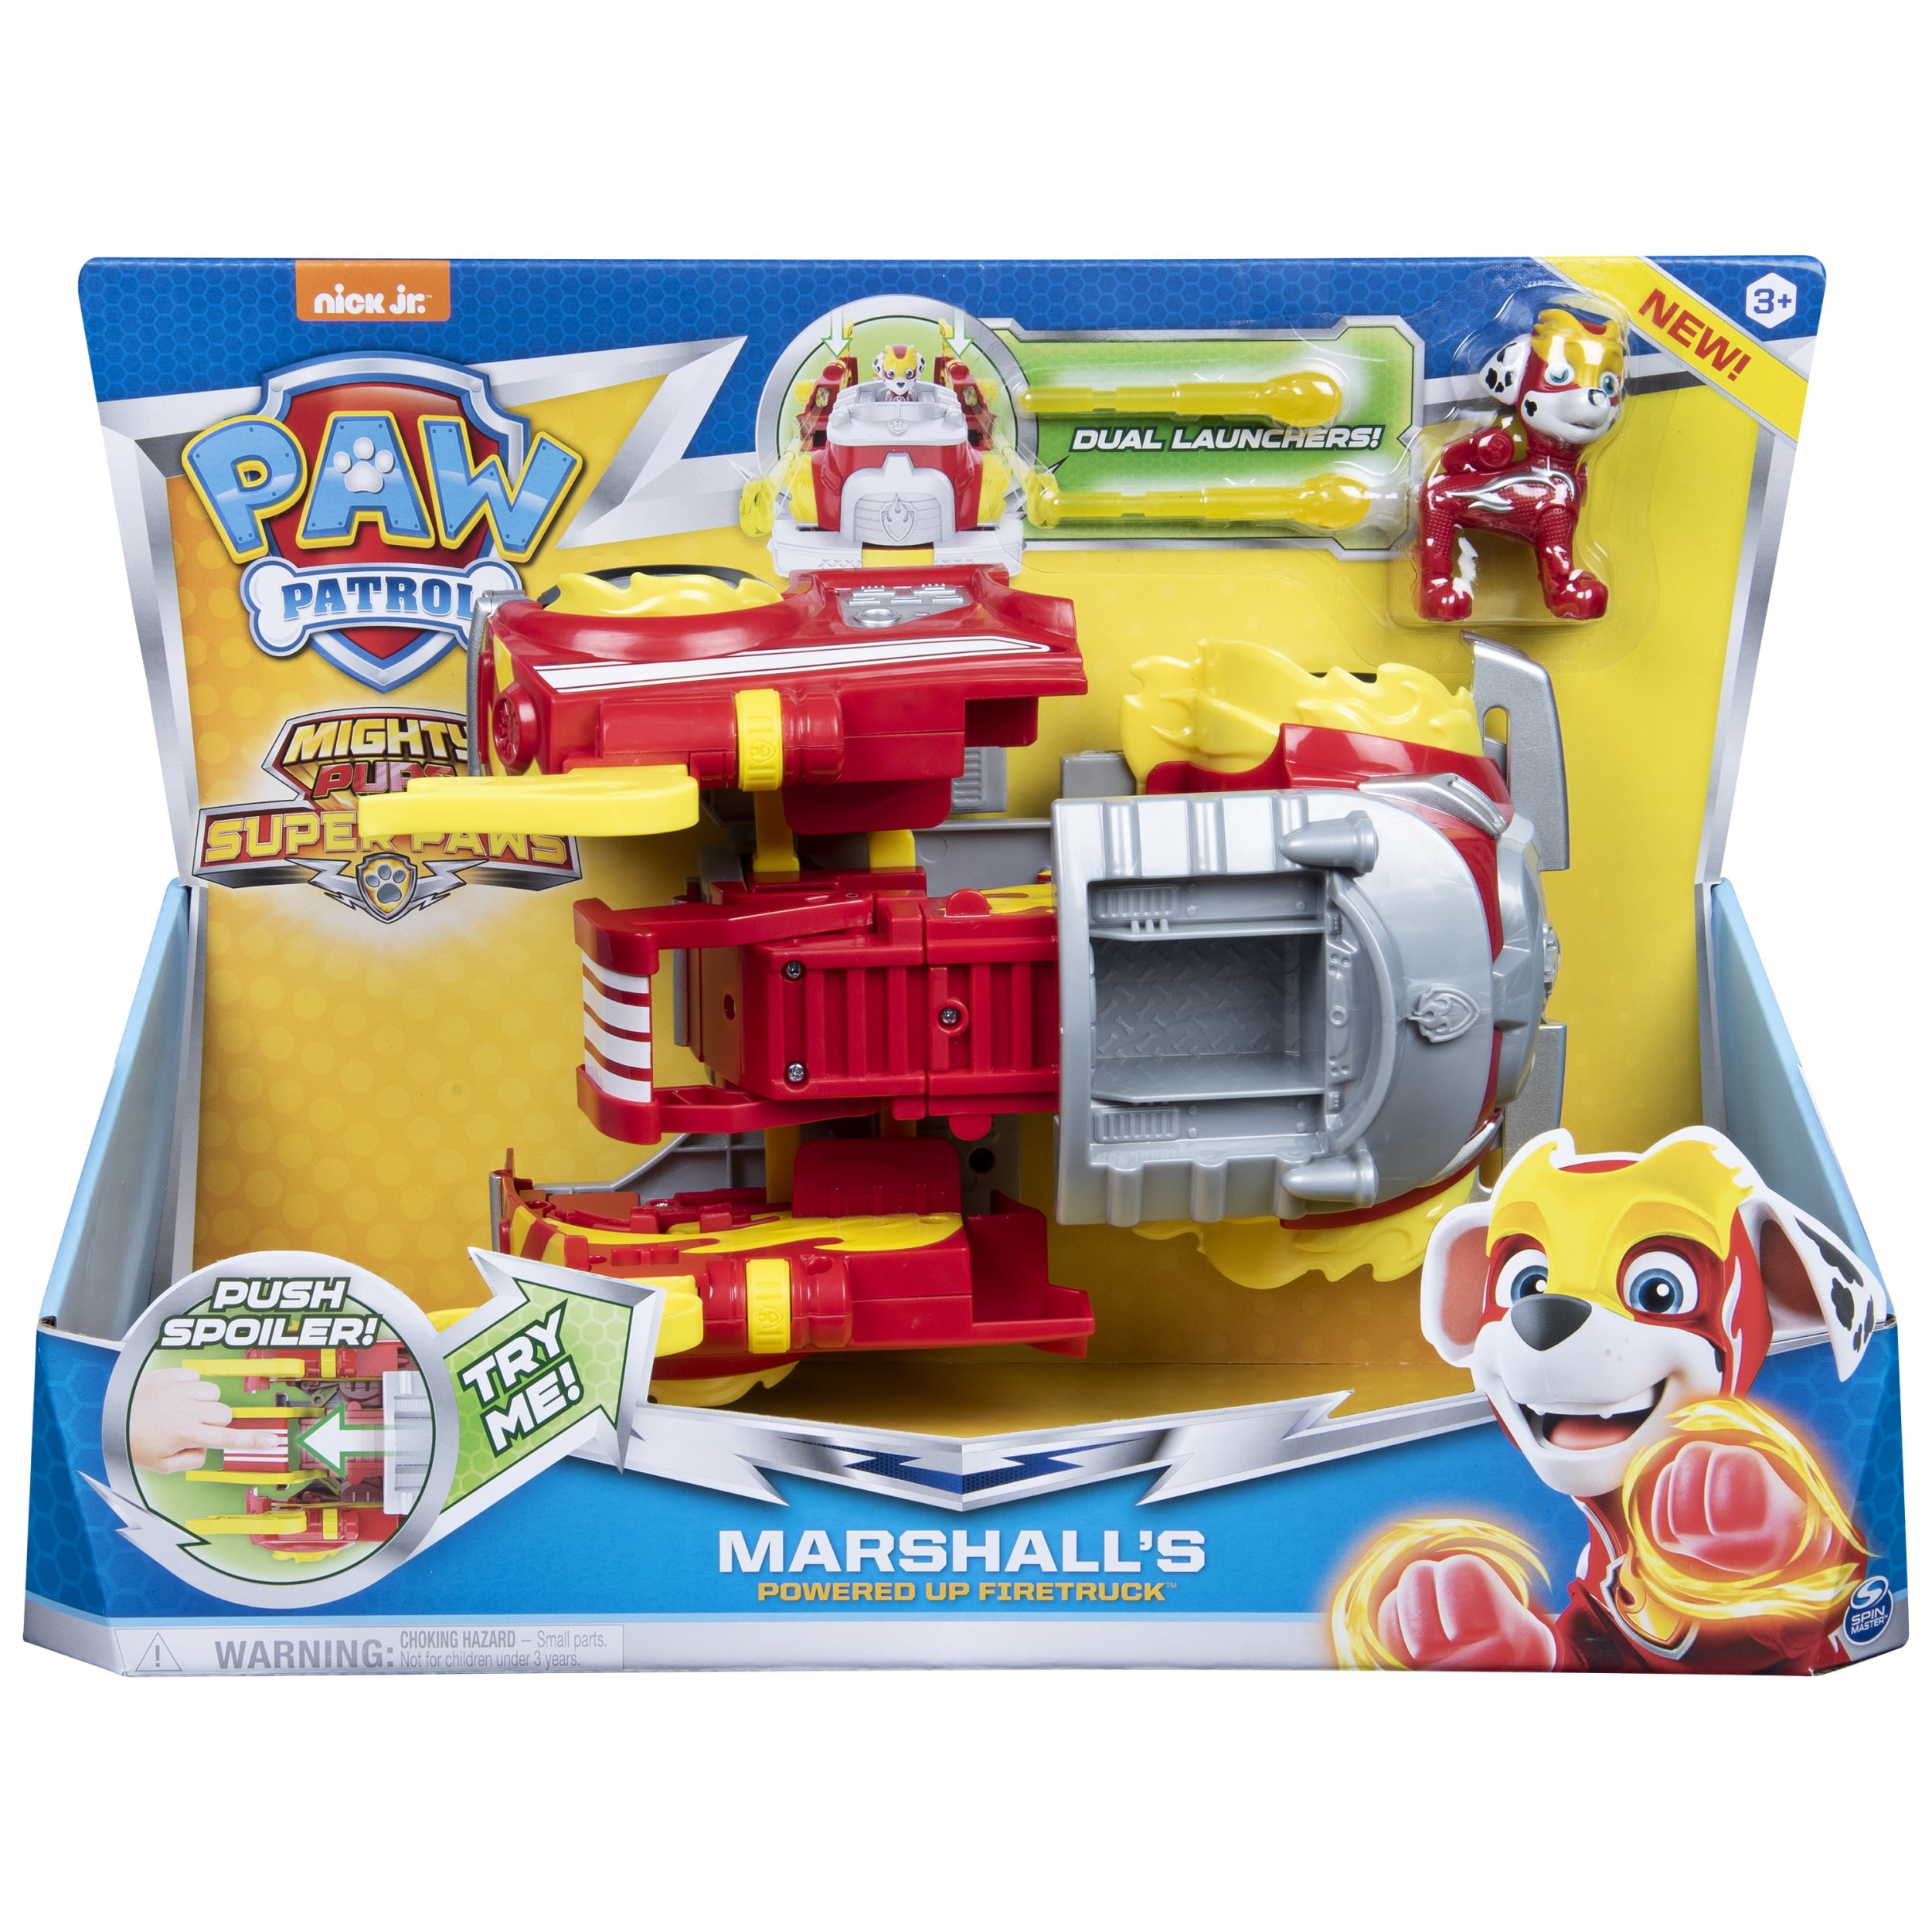 PAW Patrol, Mighty Pups Super Paws Powered up Transforming Vehicle (Styles May Vary)